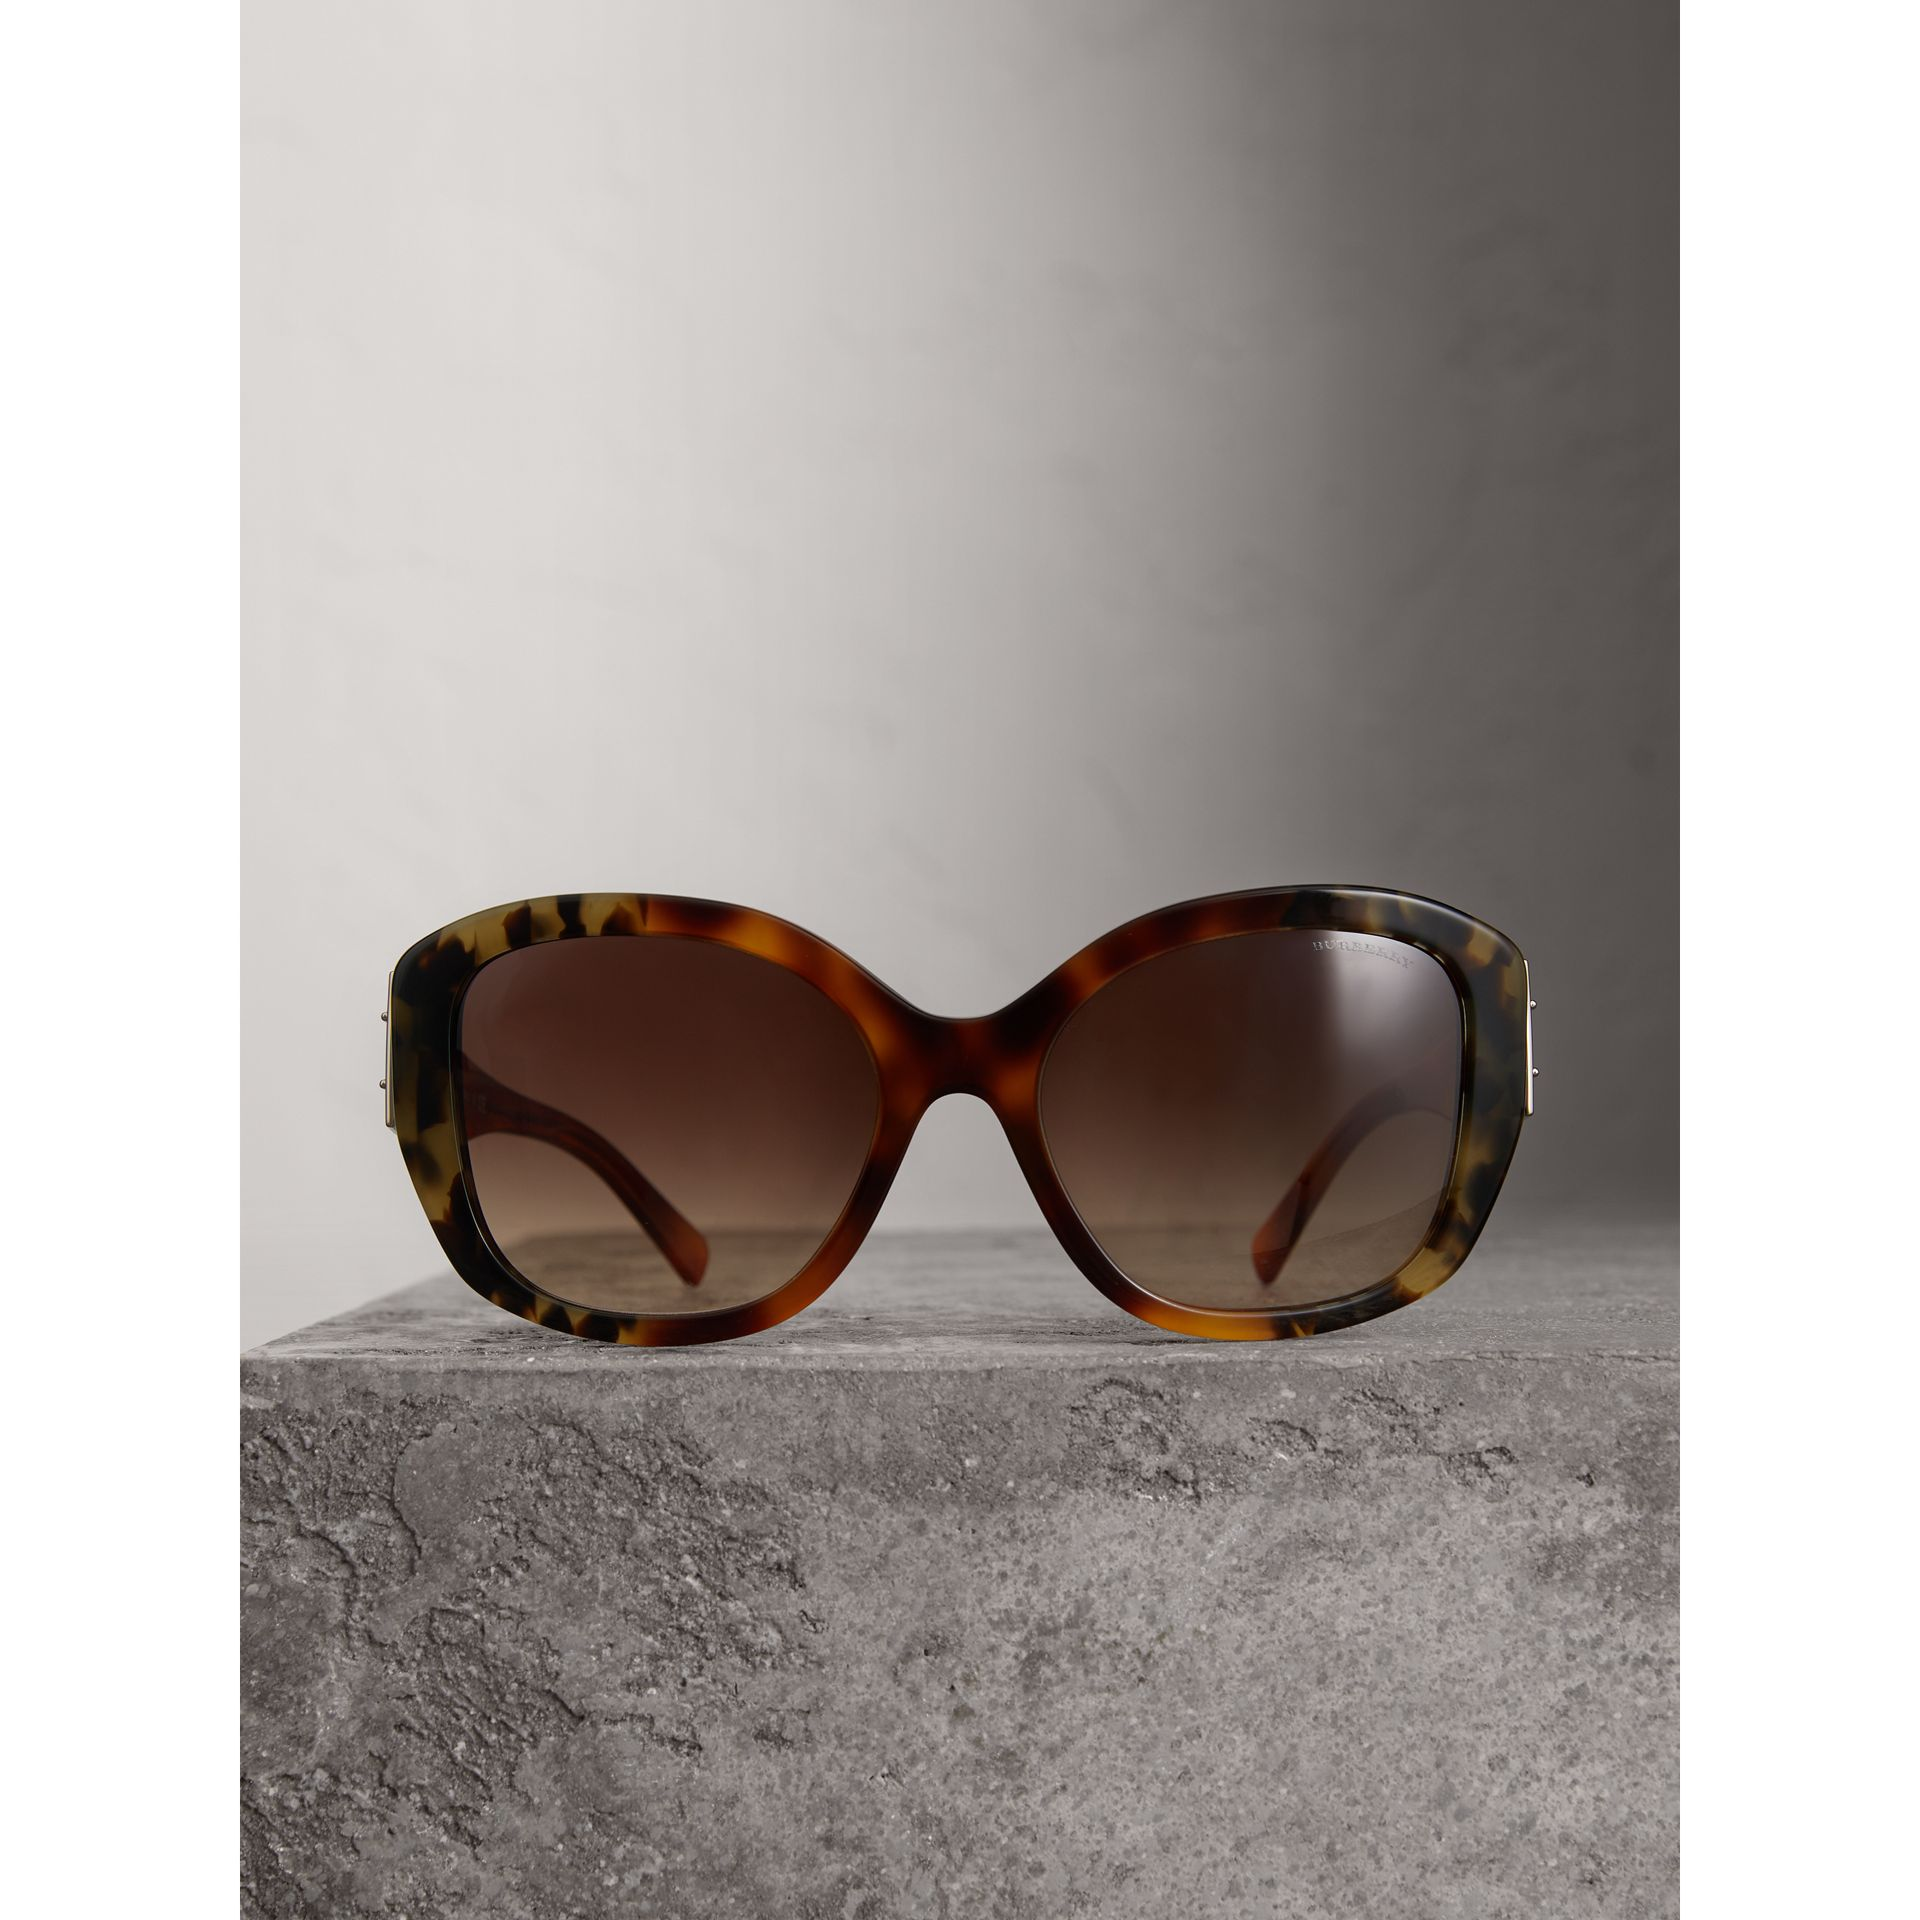 Buckle Detail Oversize Square Frame Sunglasses in Dark Ochre - Women | Burberry Singapore - gallery image 3